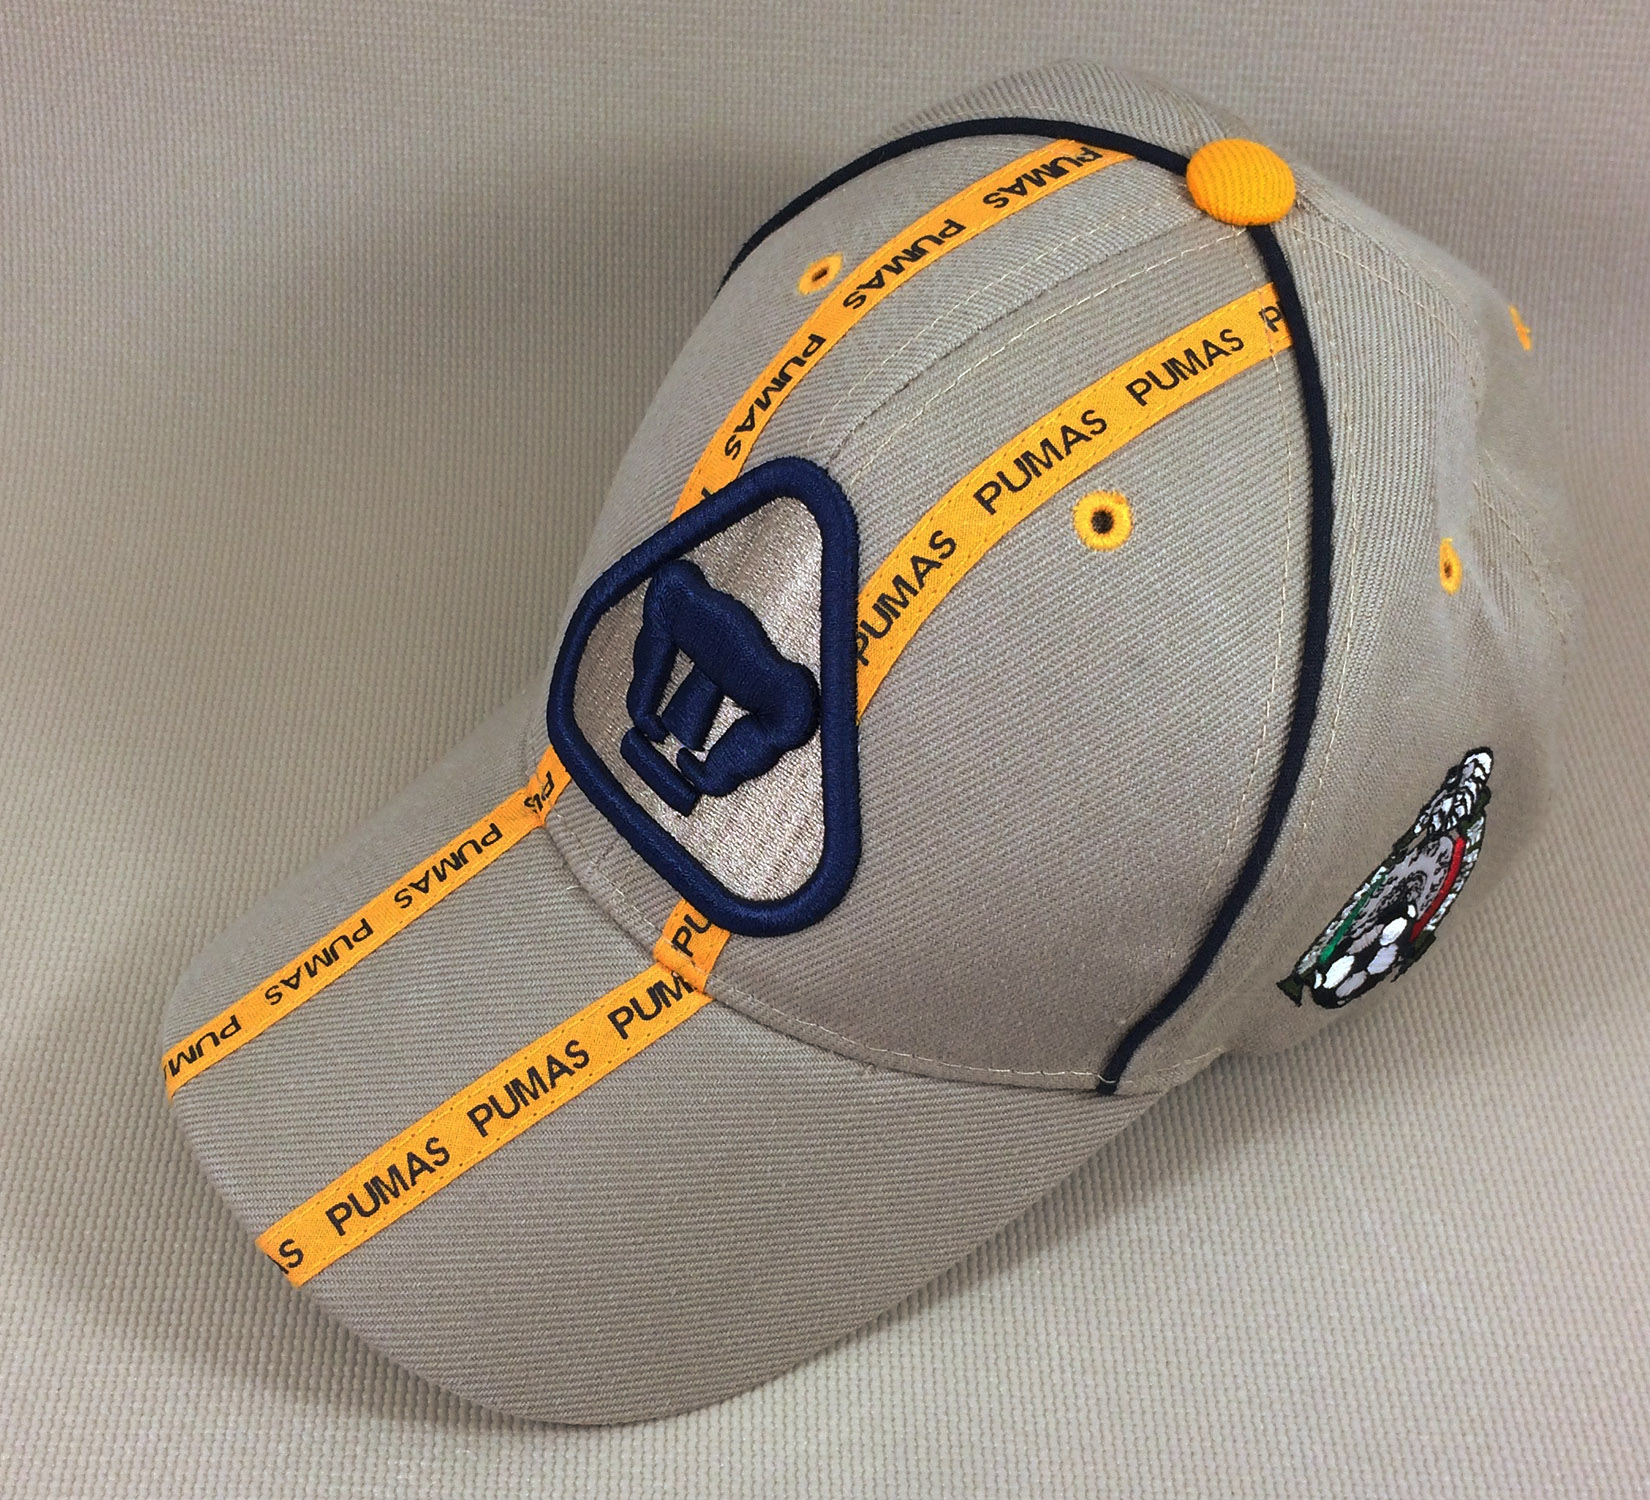 detailed look 8490b 14aa2 UNAM Pumas Cap - SportsHistoryCollectibles.com